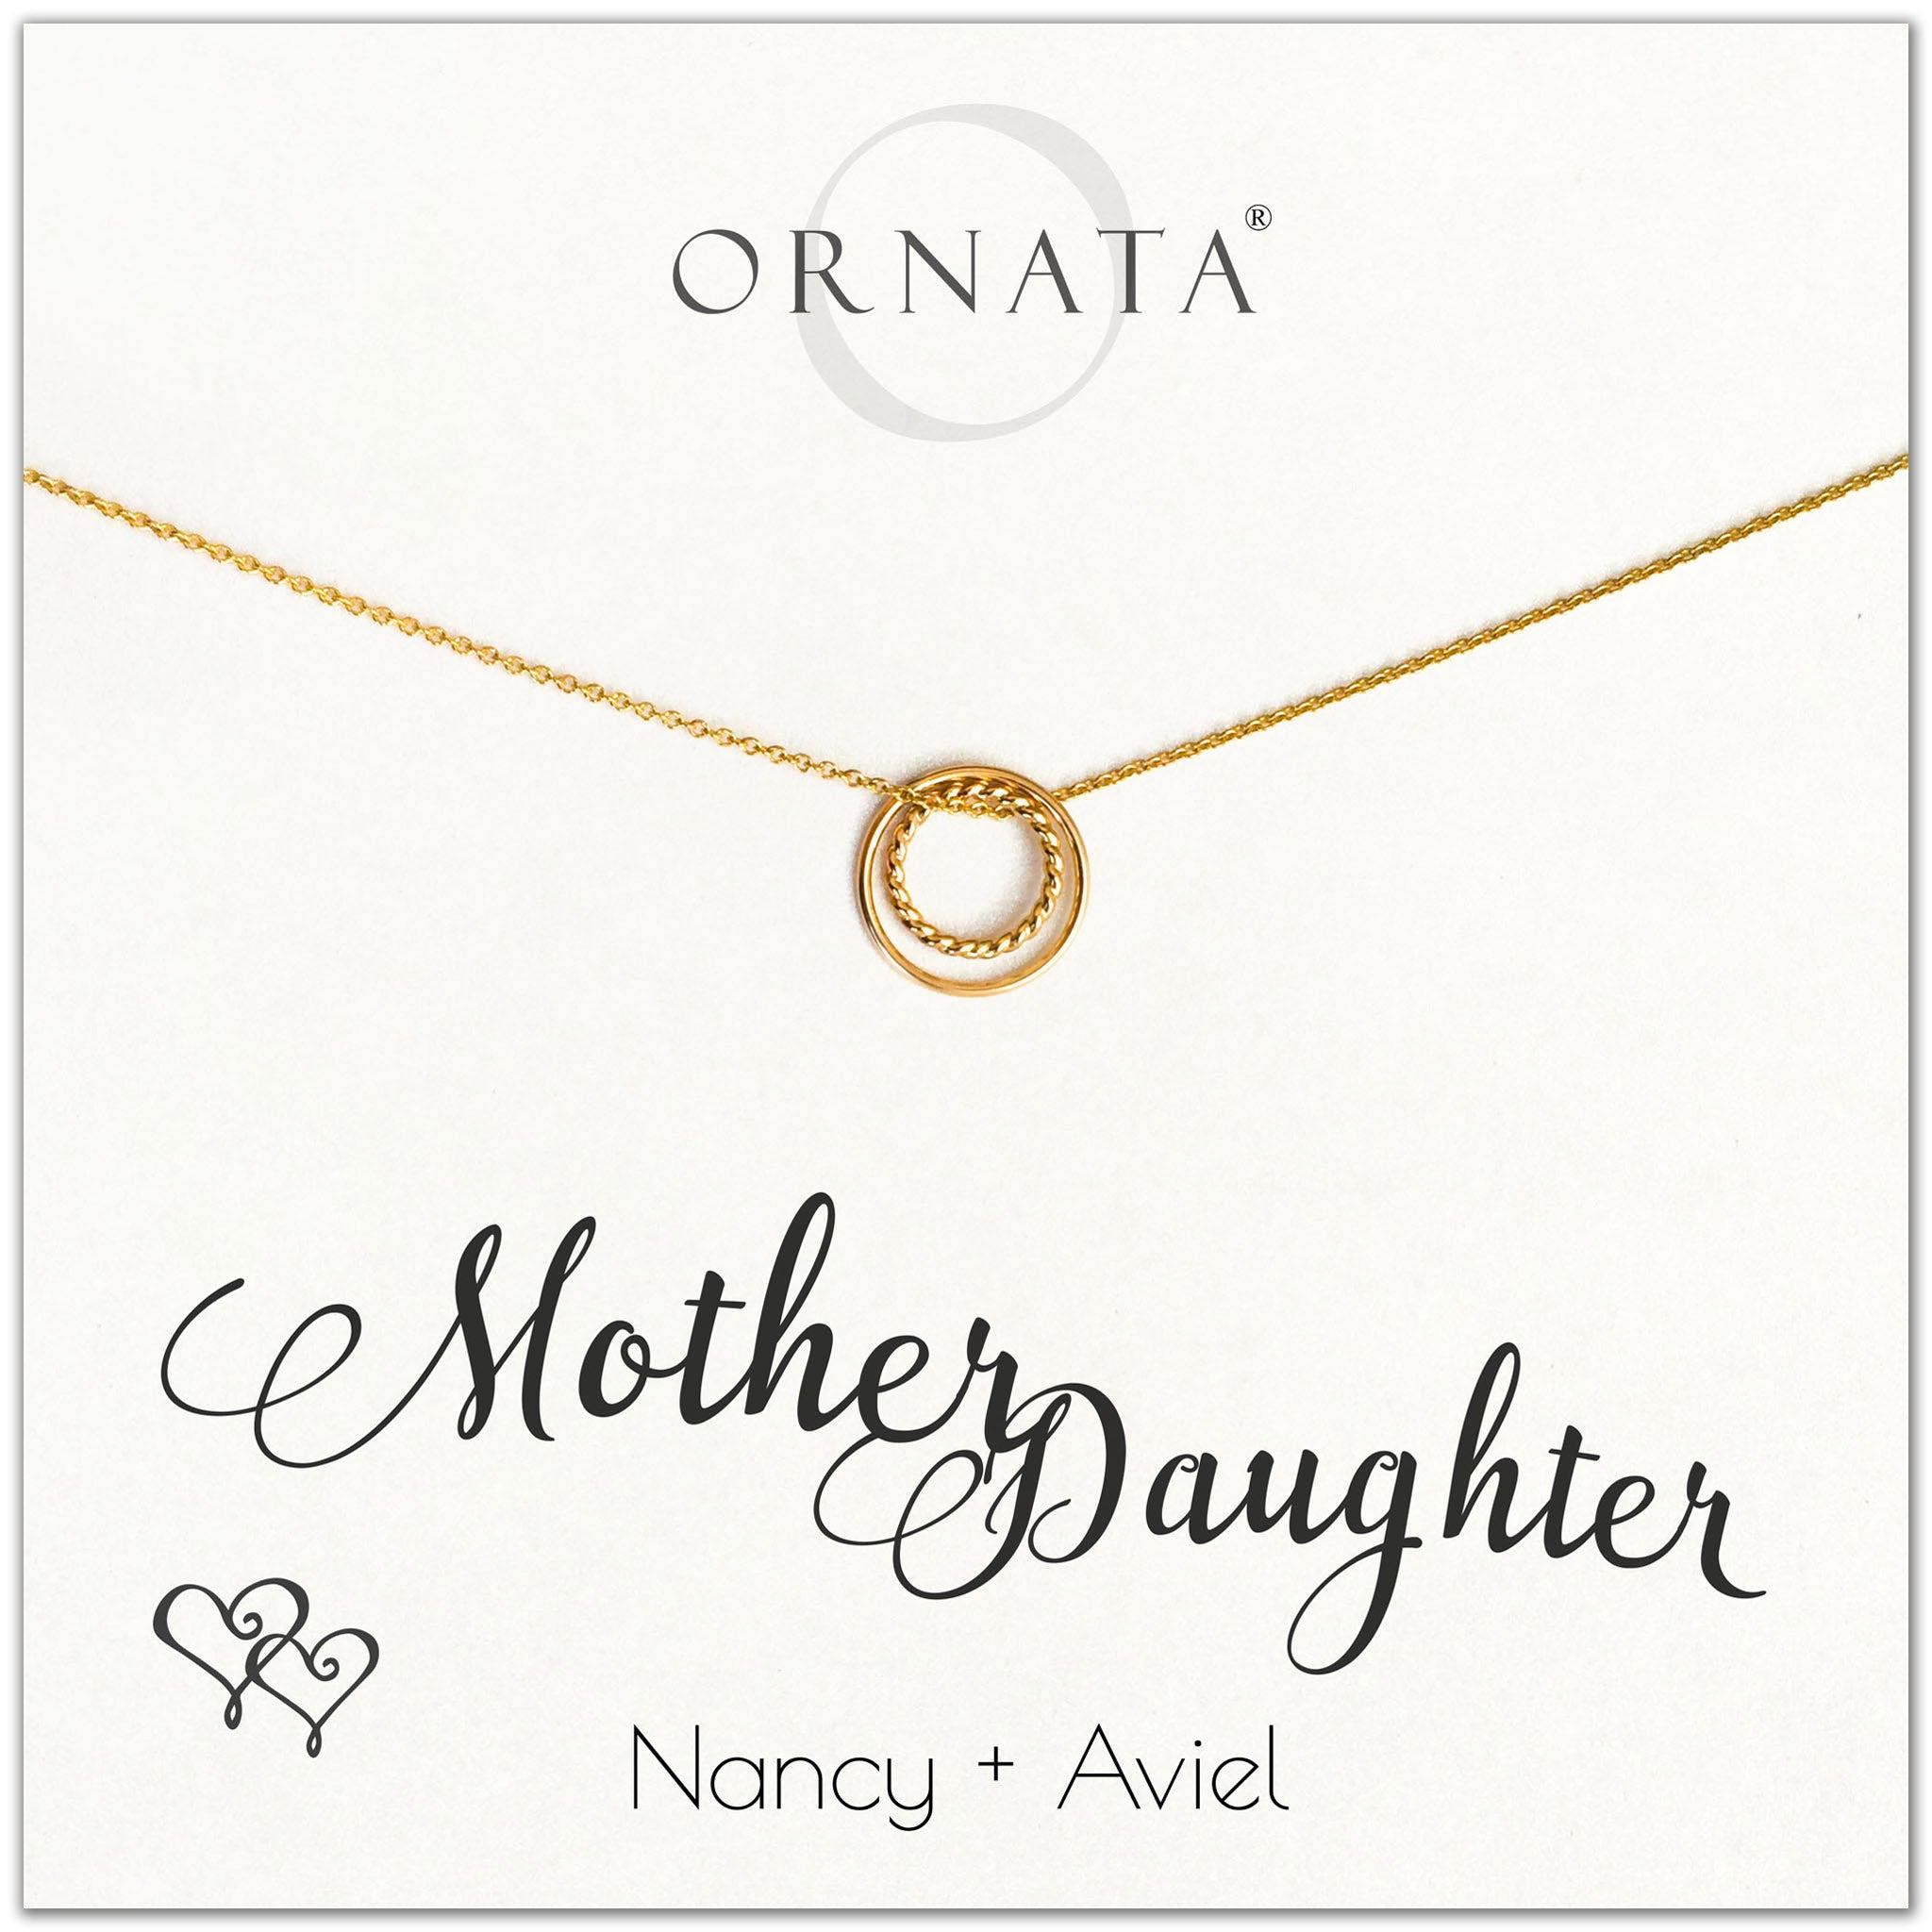 Mother Daughter necklace - personalized gold necklaces. Our 14 karat gold filled custom jewelry is a perfect gift for mothers, daughters, granddaughters, grandmothers, sisters, wives, and family members. Also a good gift for Mother's Day.